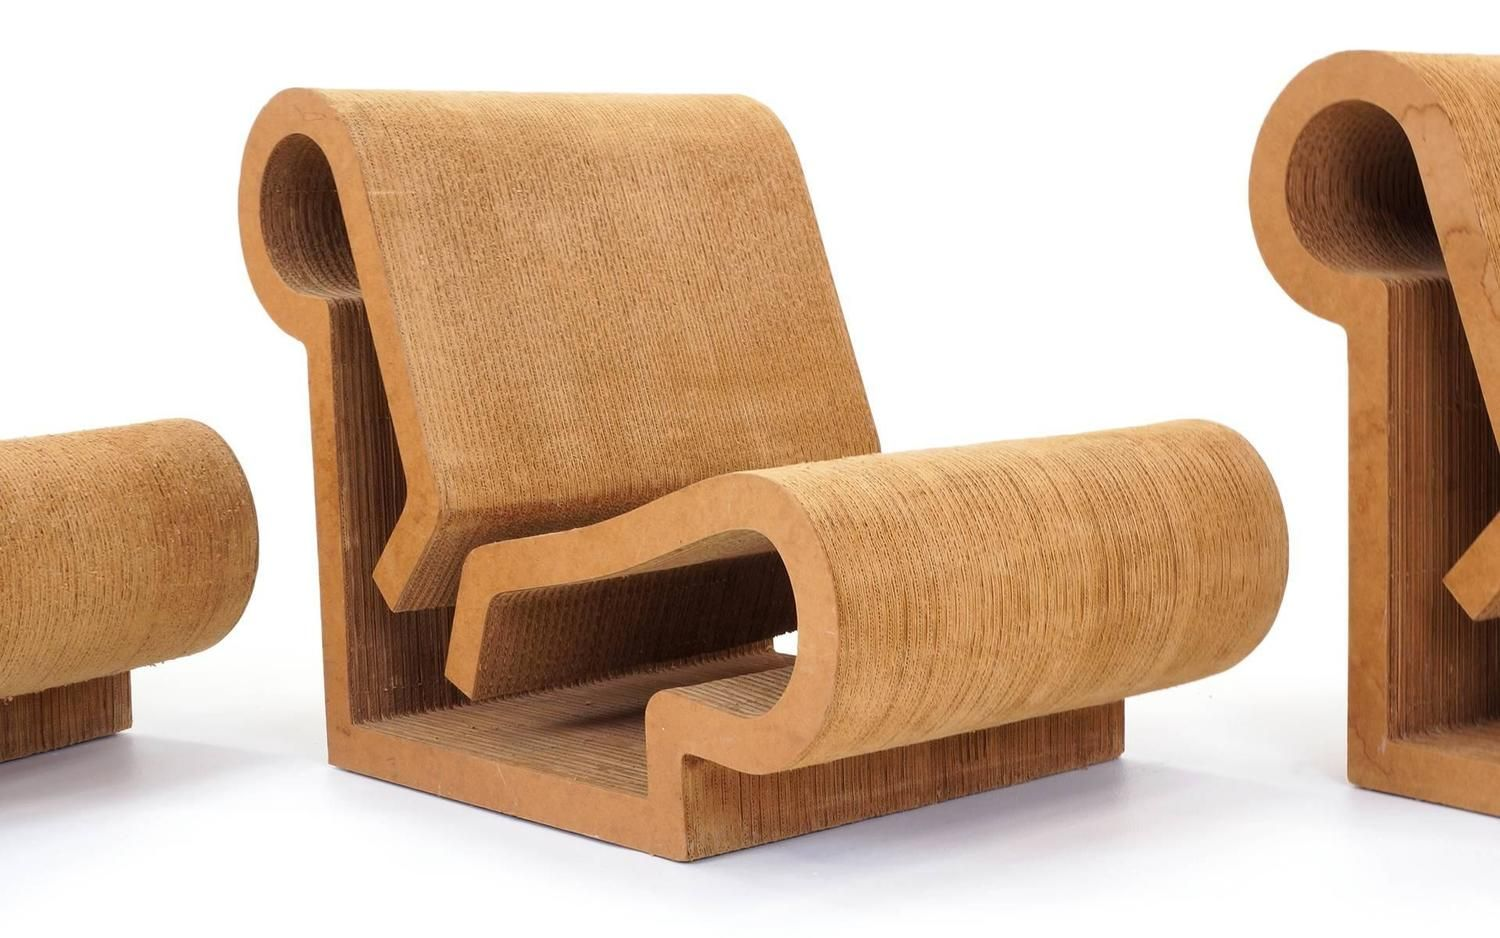 70s chairs is frank o gehry s cardboard chair wiggle side chair - Rare Original Frank Gehry Easy Edges Cardboard Contour Chairs